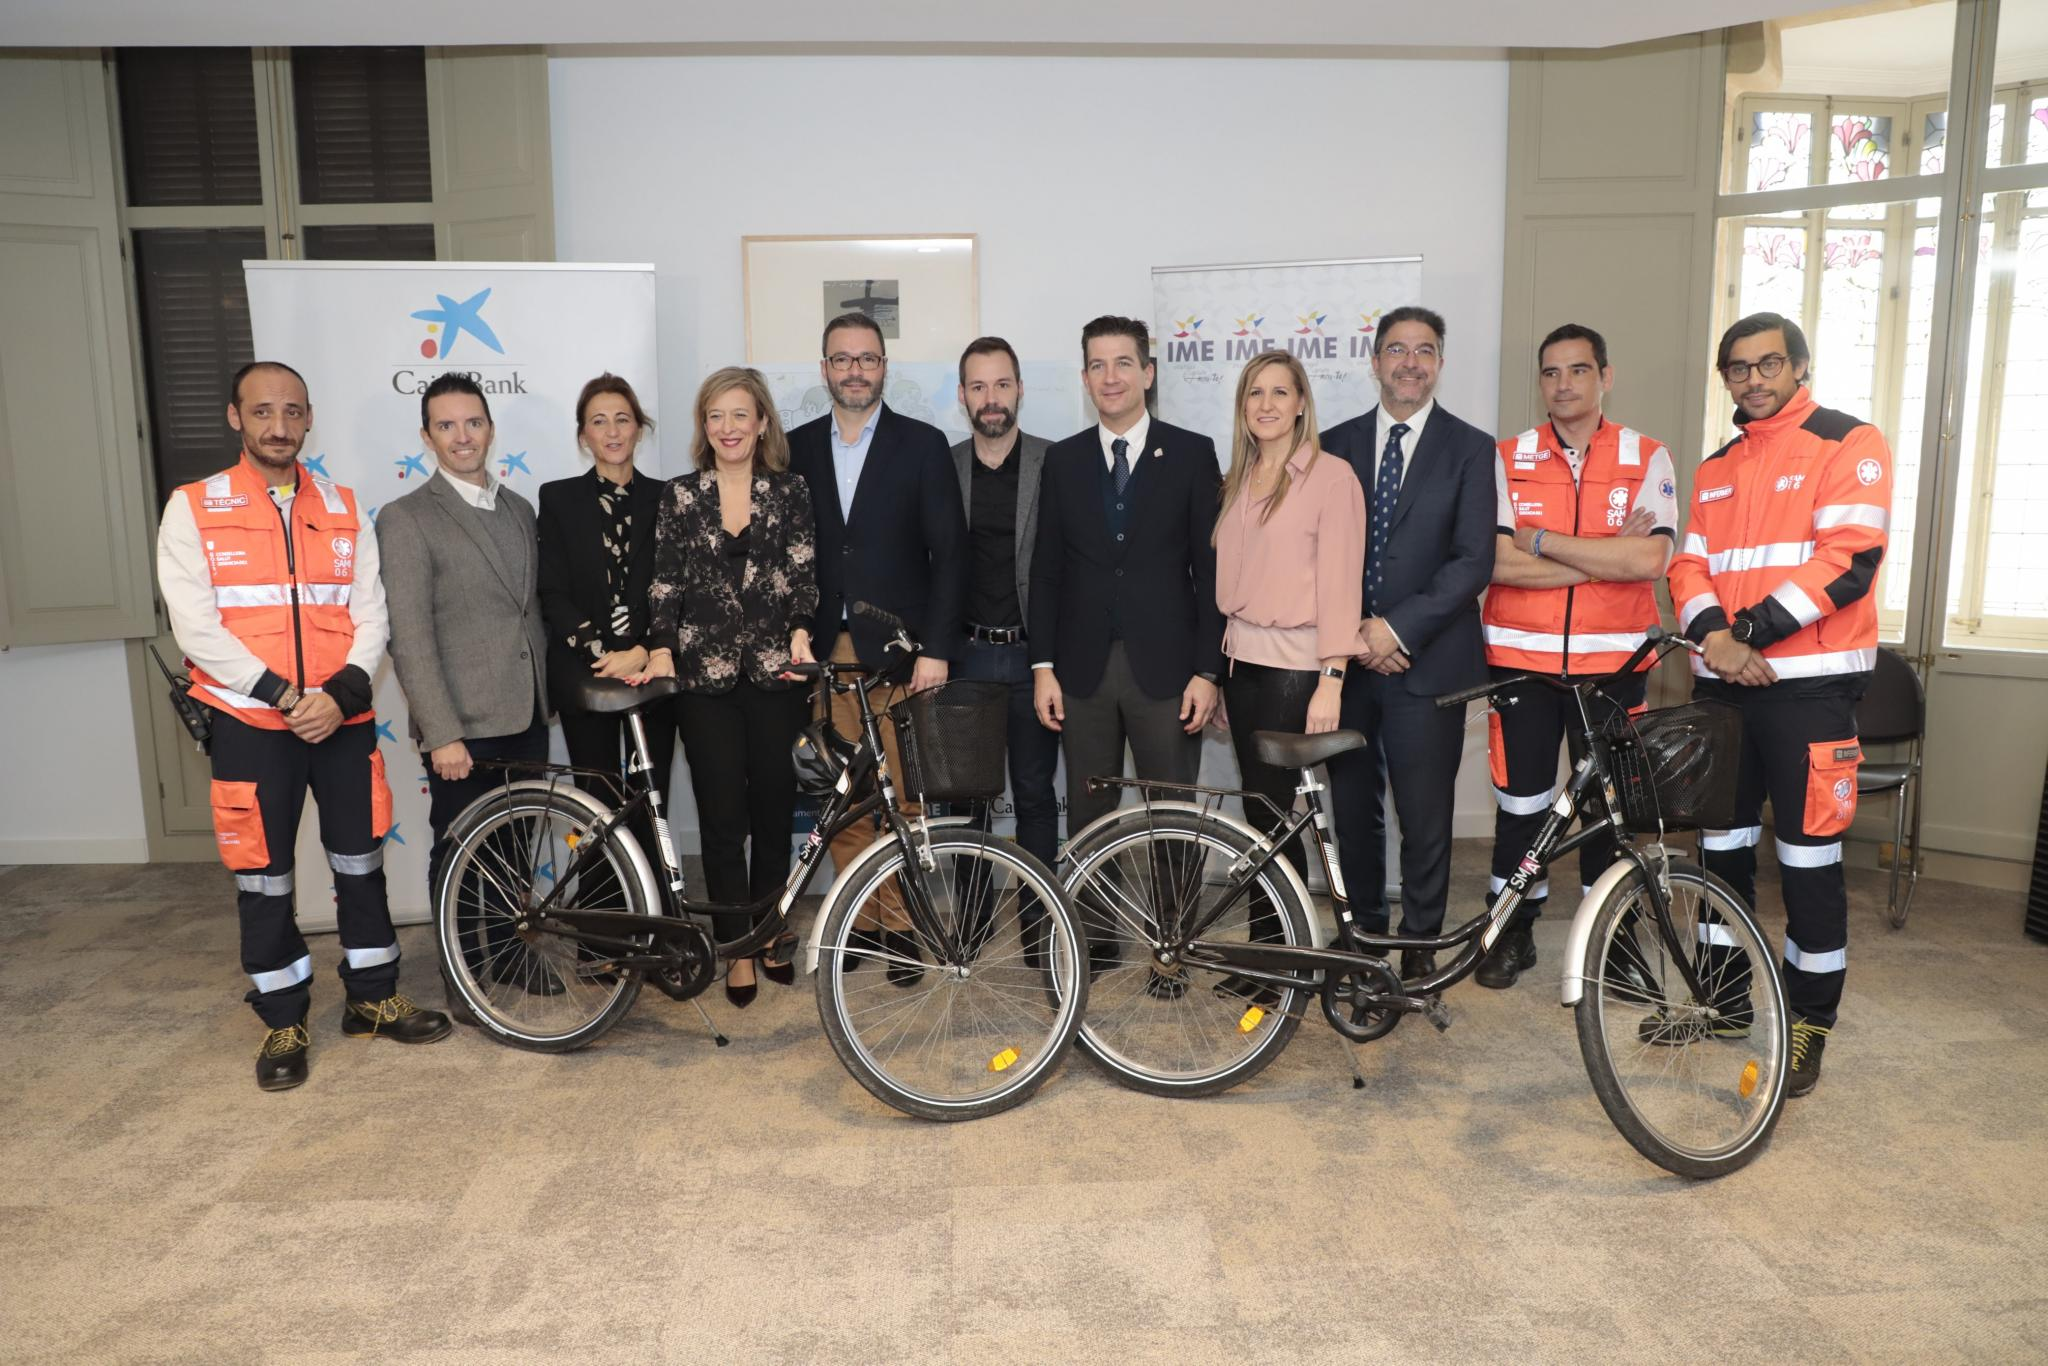 Palma Cycling Day is part of the fiestas for Sant Sebastià